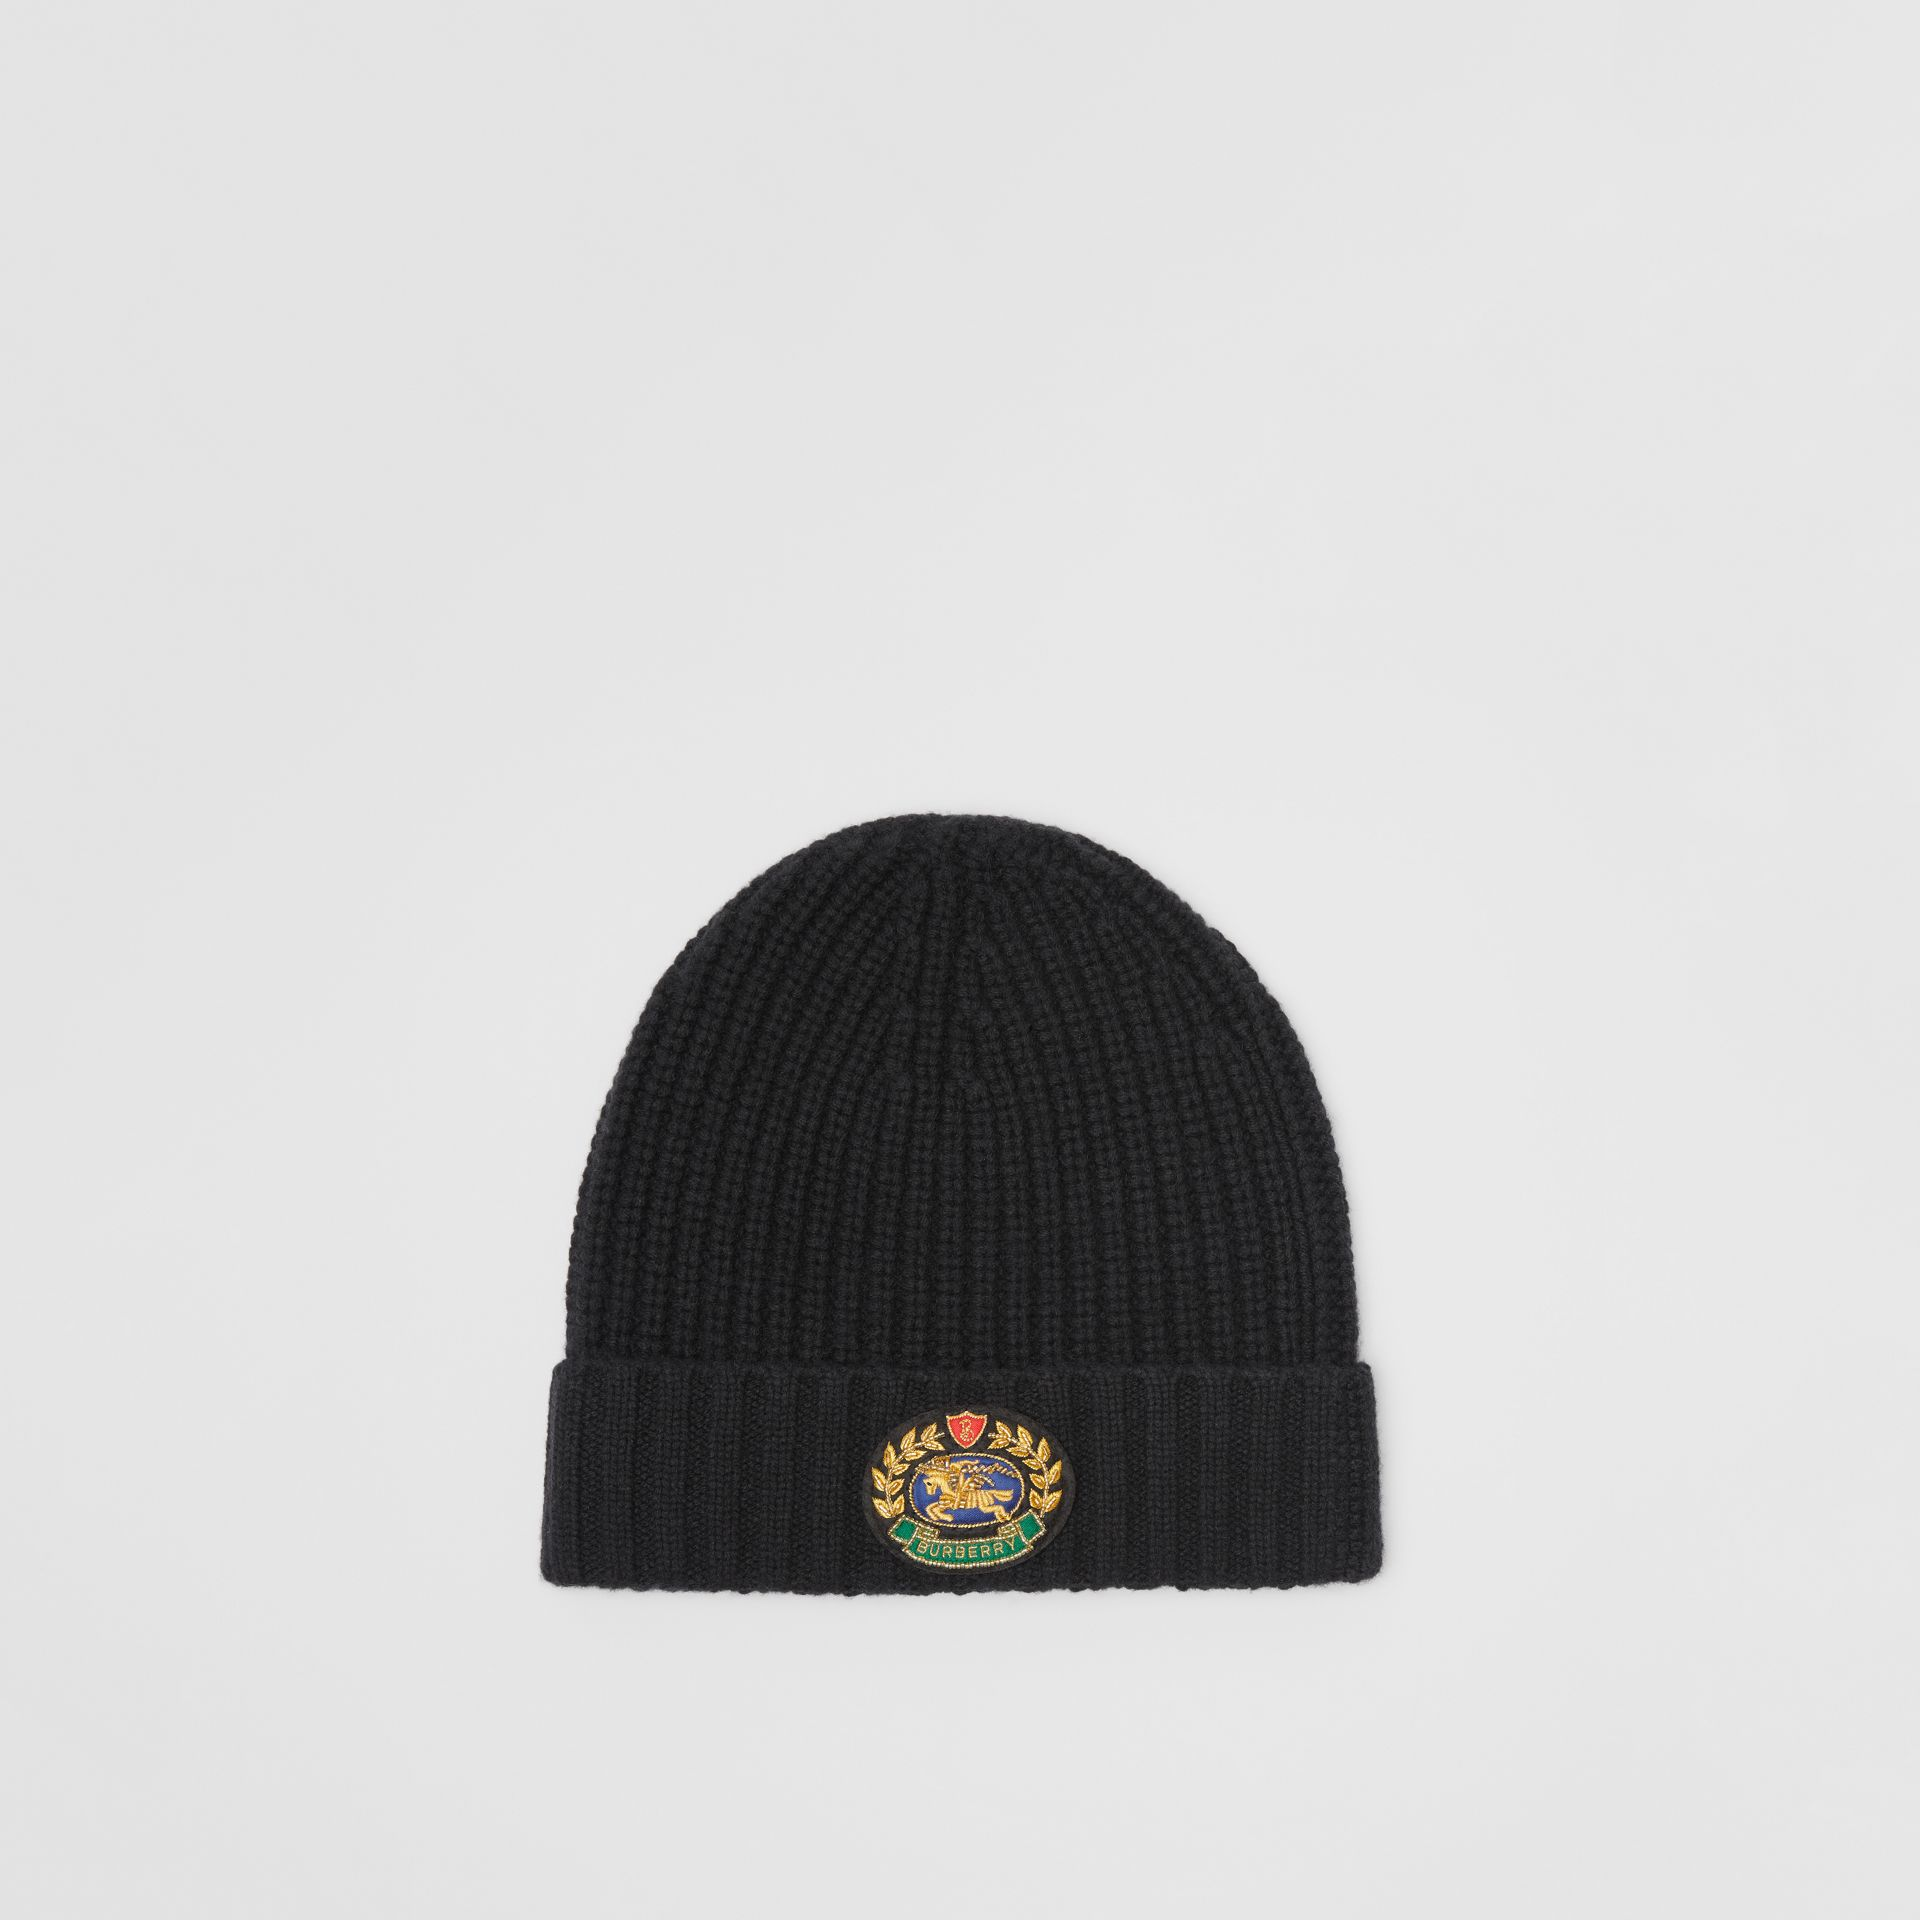 Embroidered Crest Rib Knit Wool Cashmere Beanie in Black | Burberry Singapore - gallery image 0